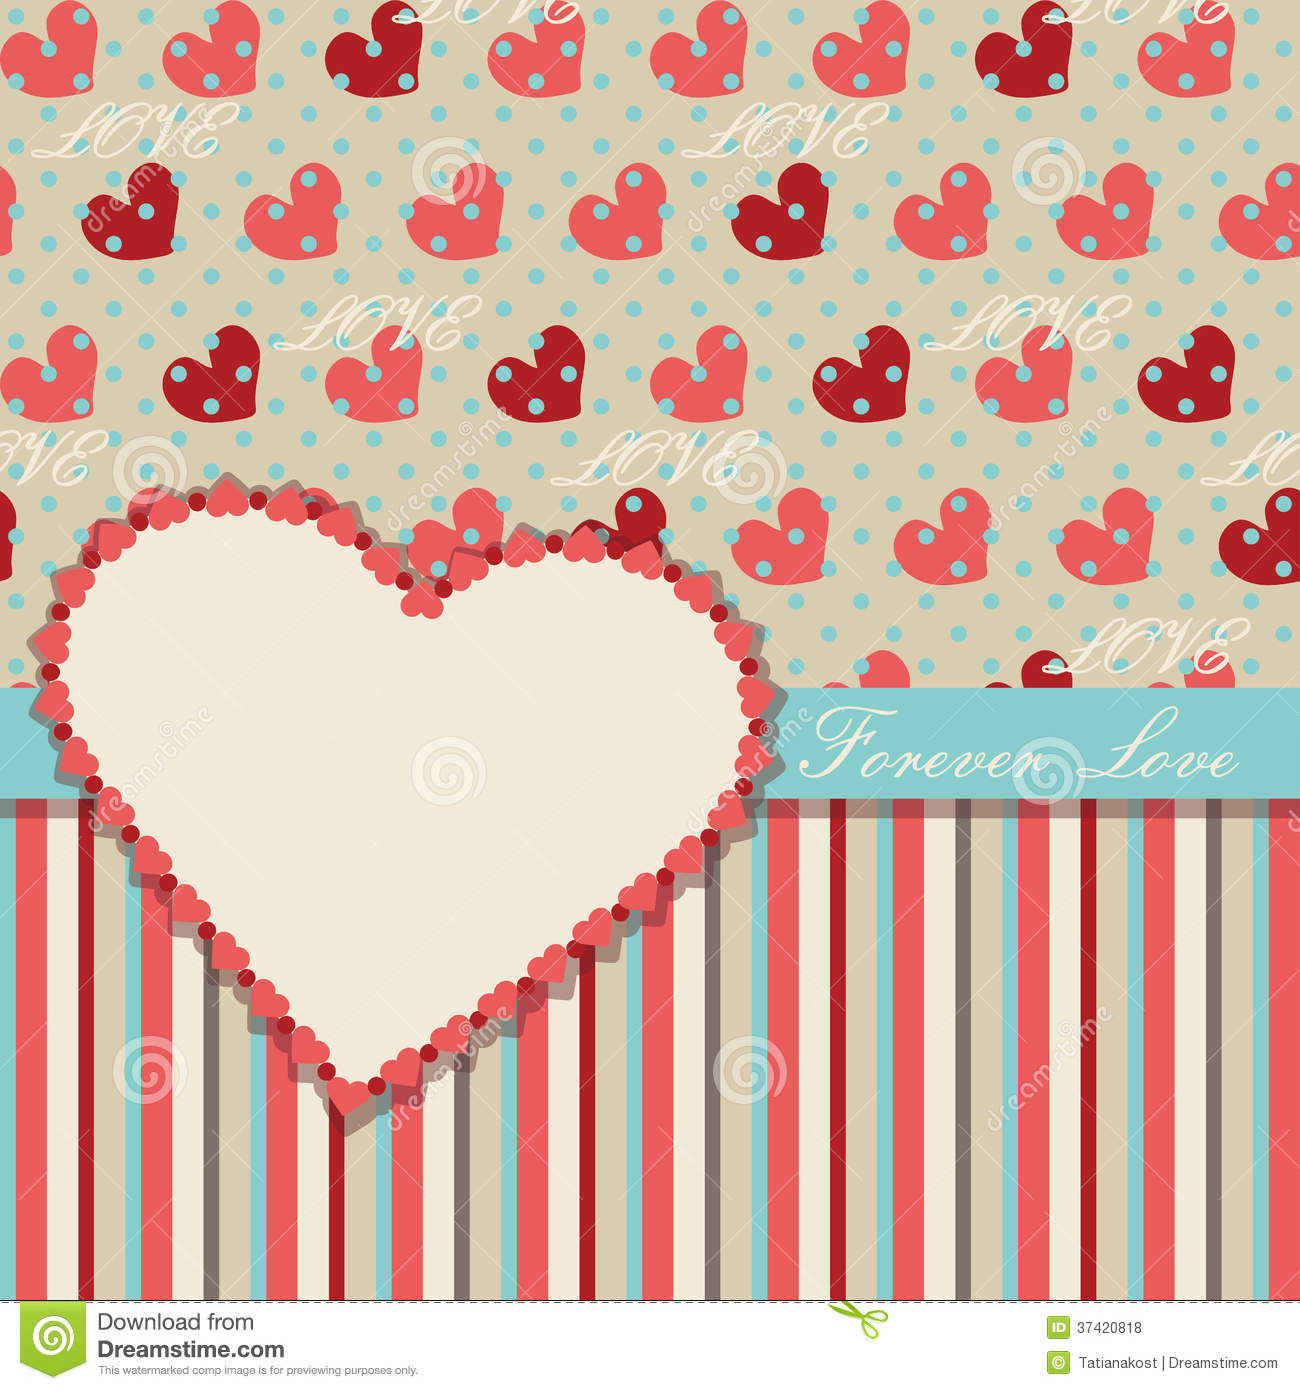 Vintage Valentines Design Template With Hearts And Stock